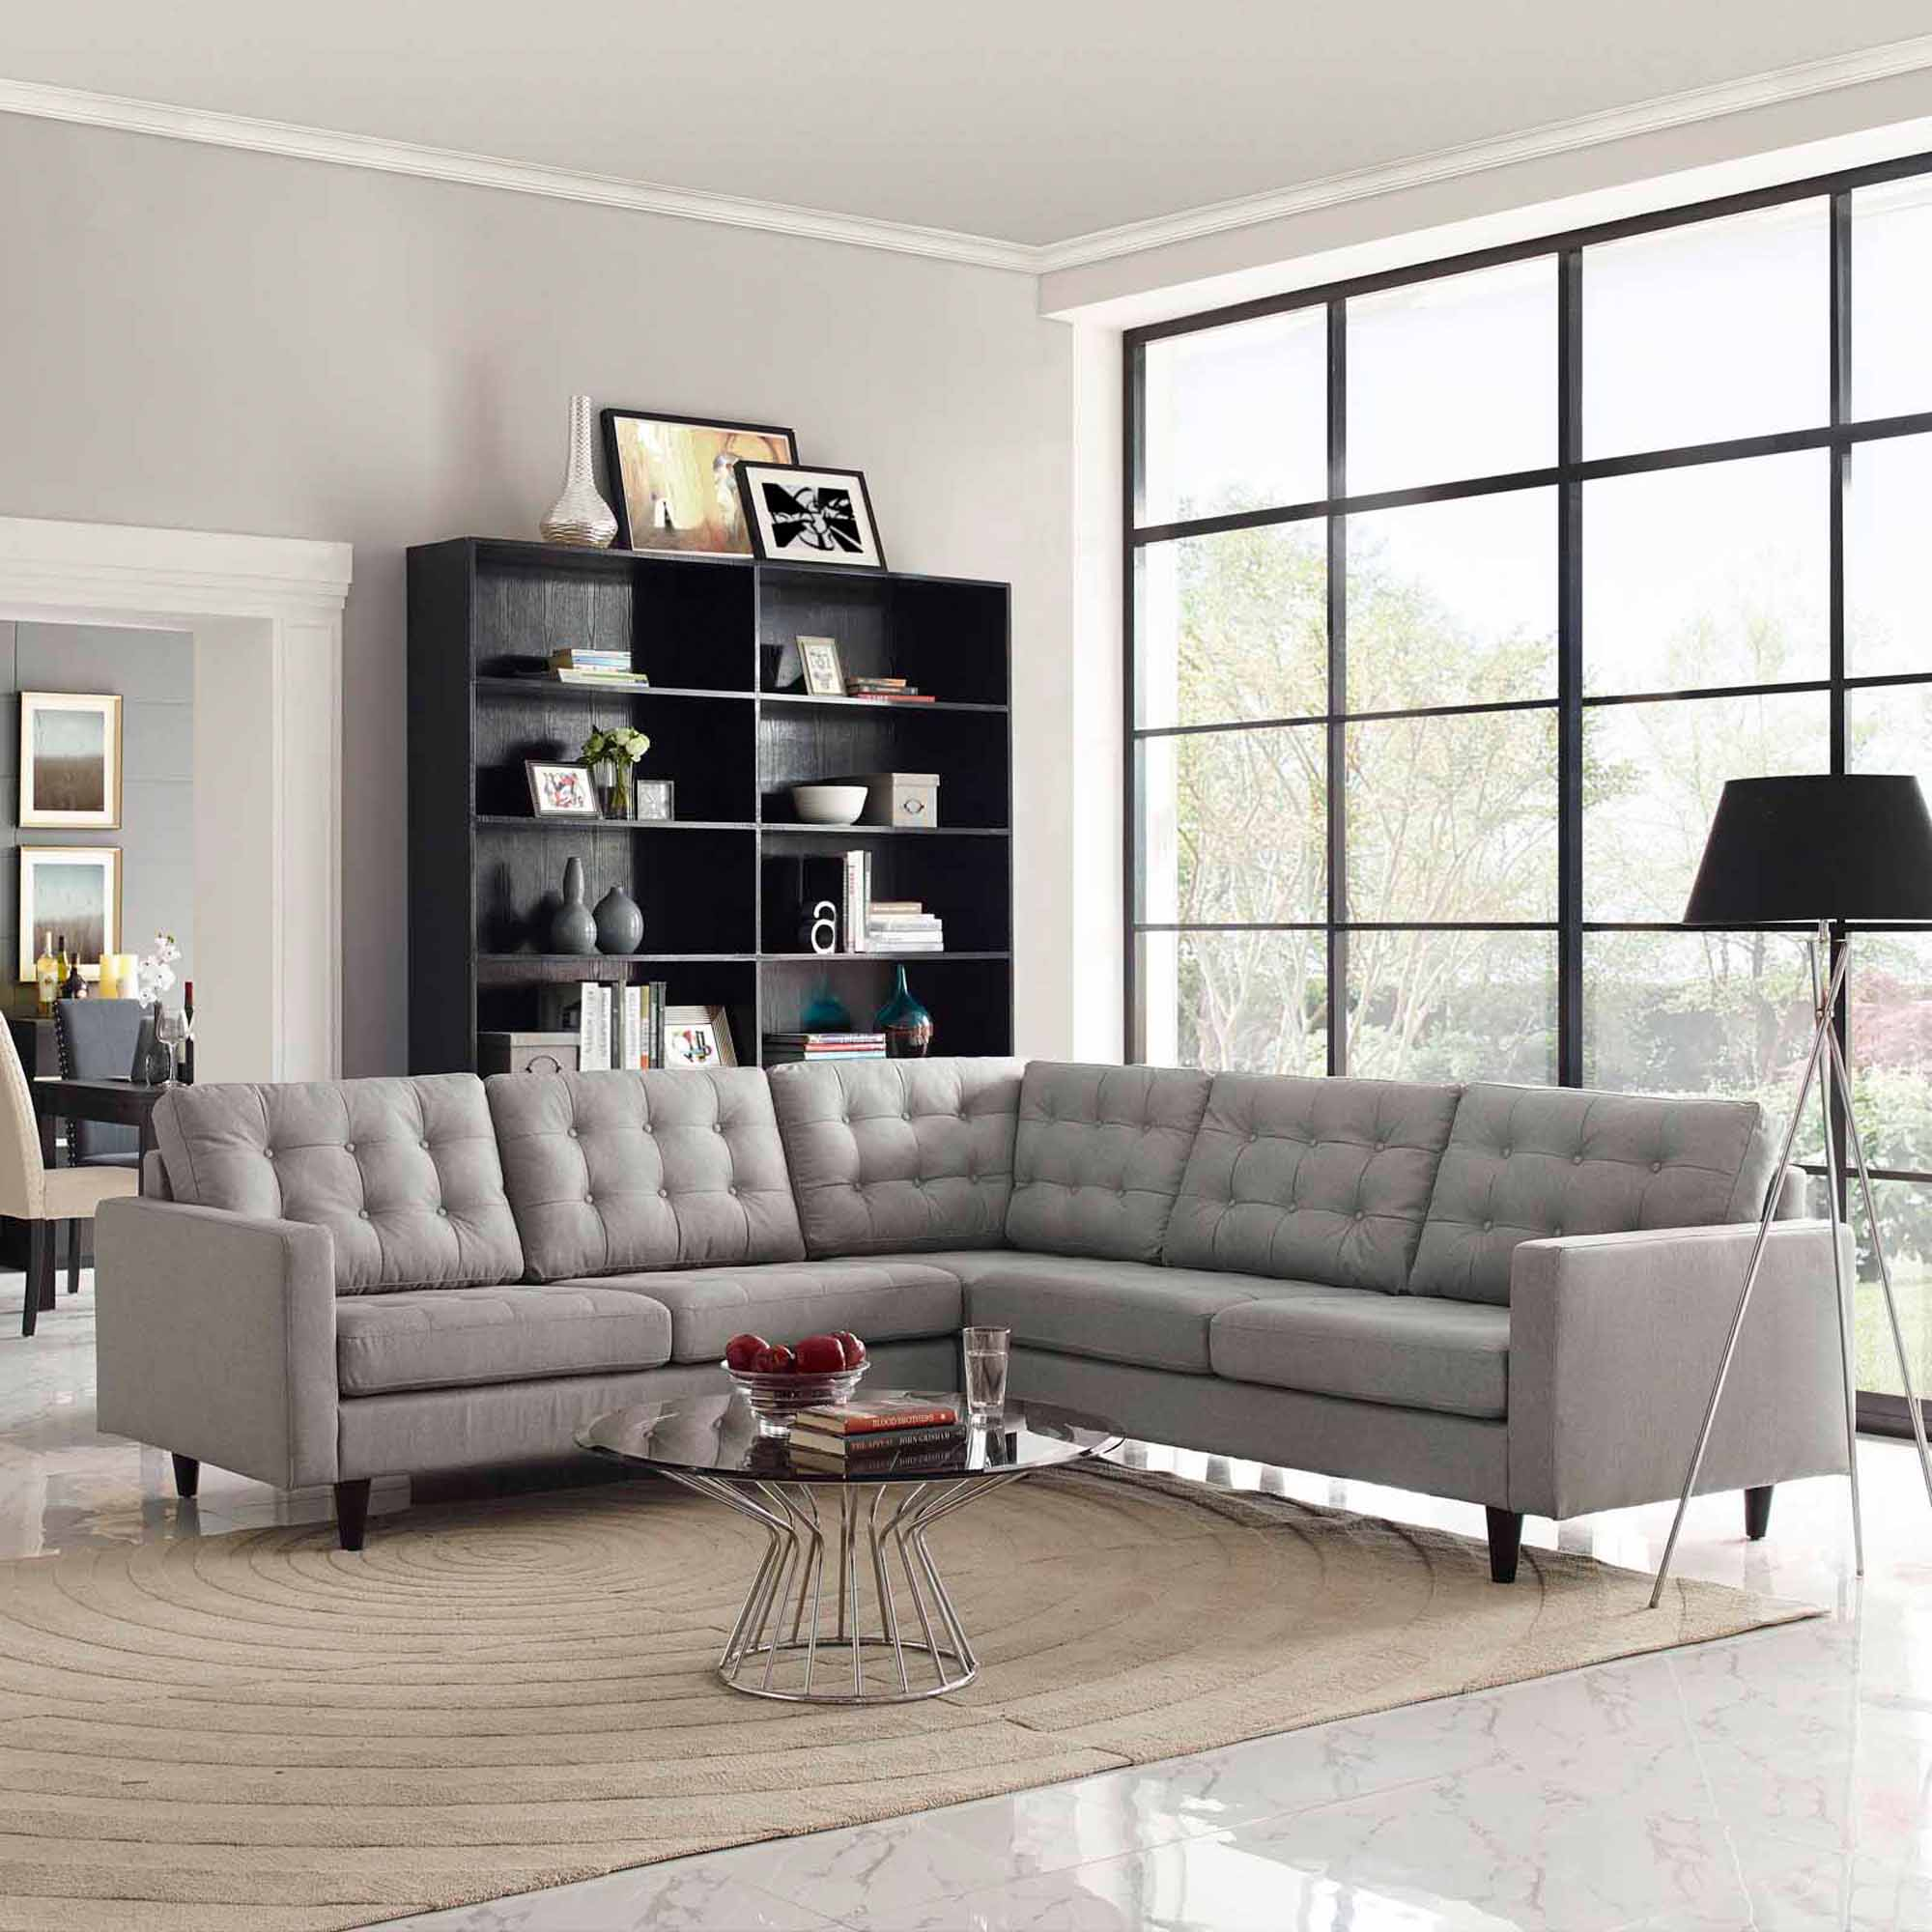 of lane grey couch modern fabric storage full costco table sofas ikea size small sectional broyhill with stores bed sofa furniture sectionals